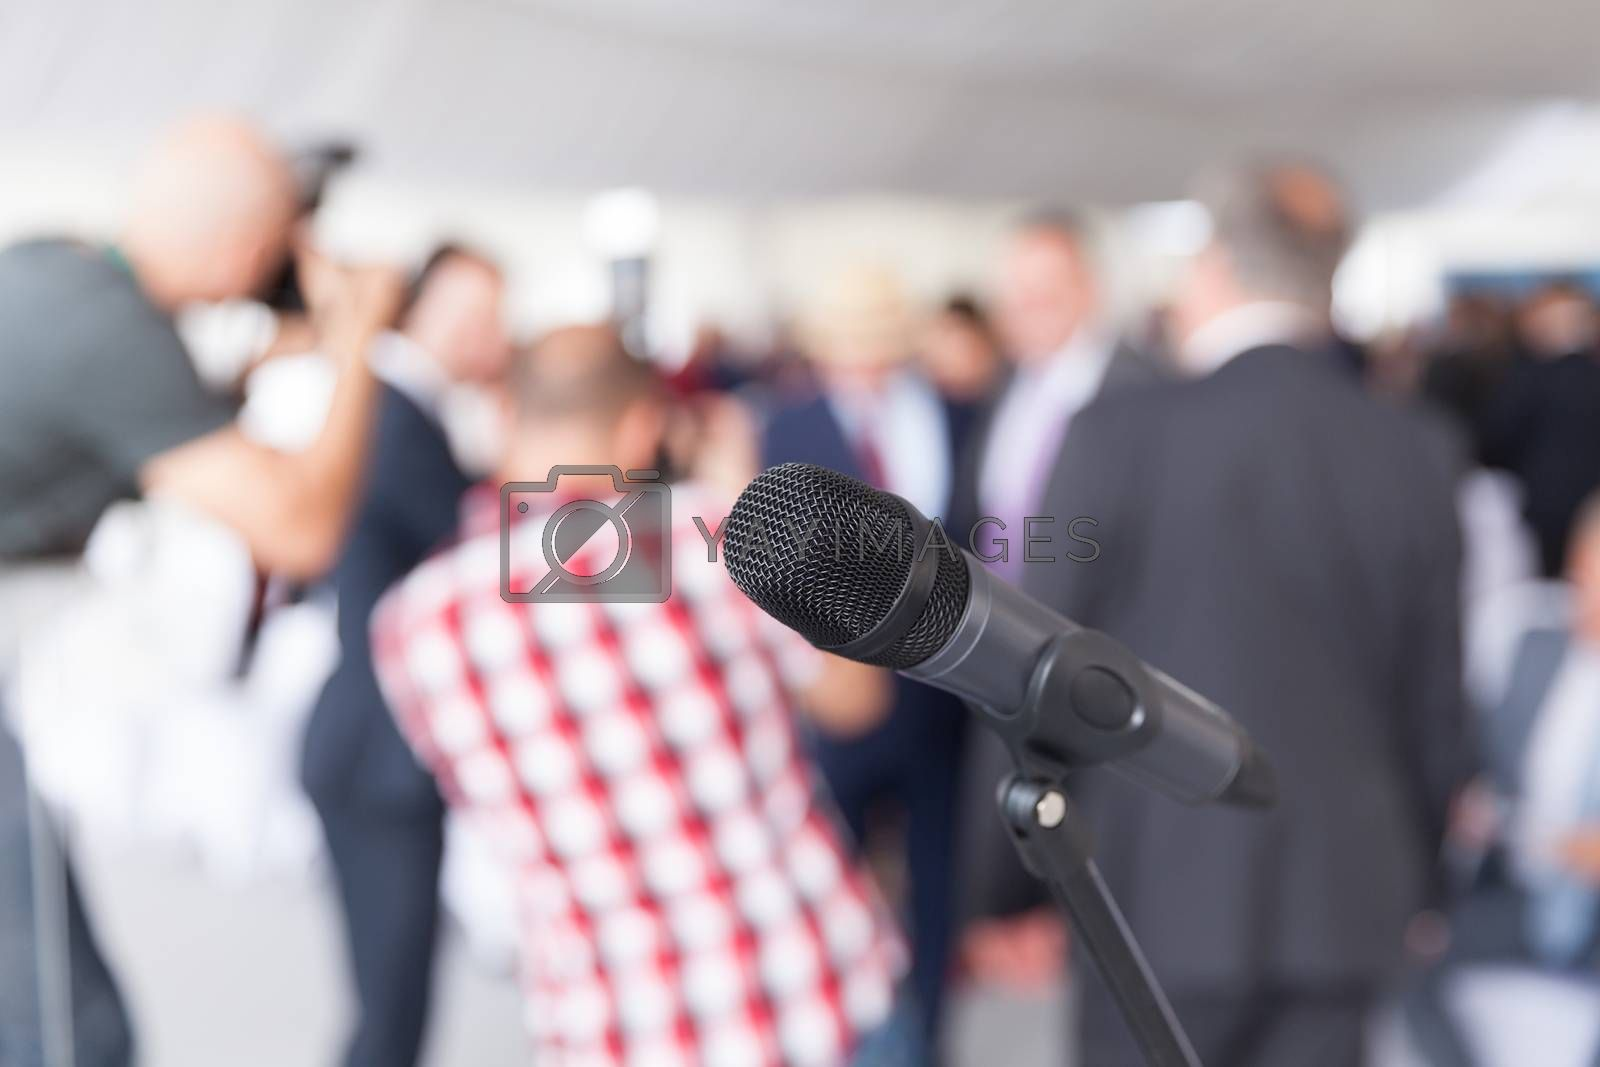 Media event. Press conference. Microphone. by wellphoto